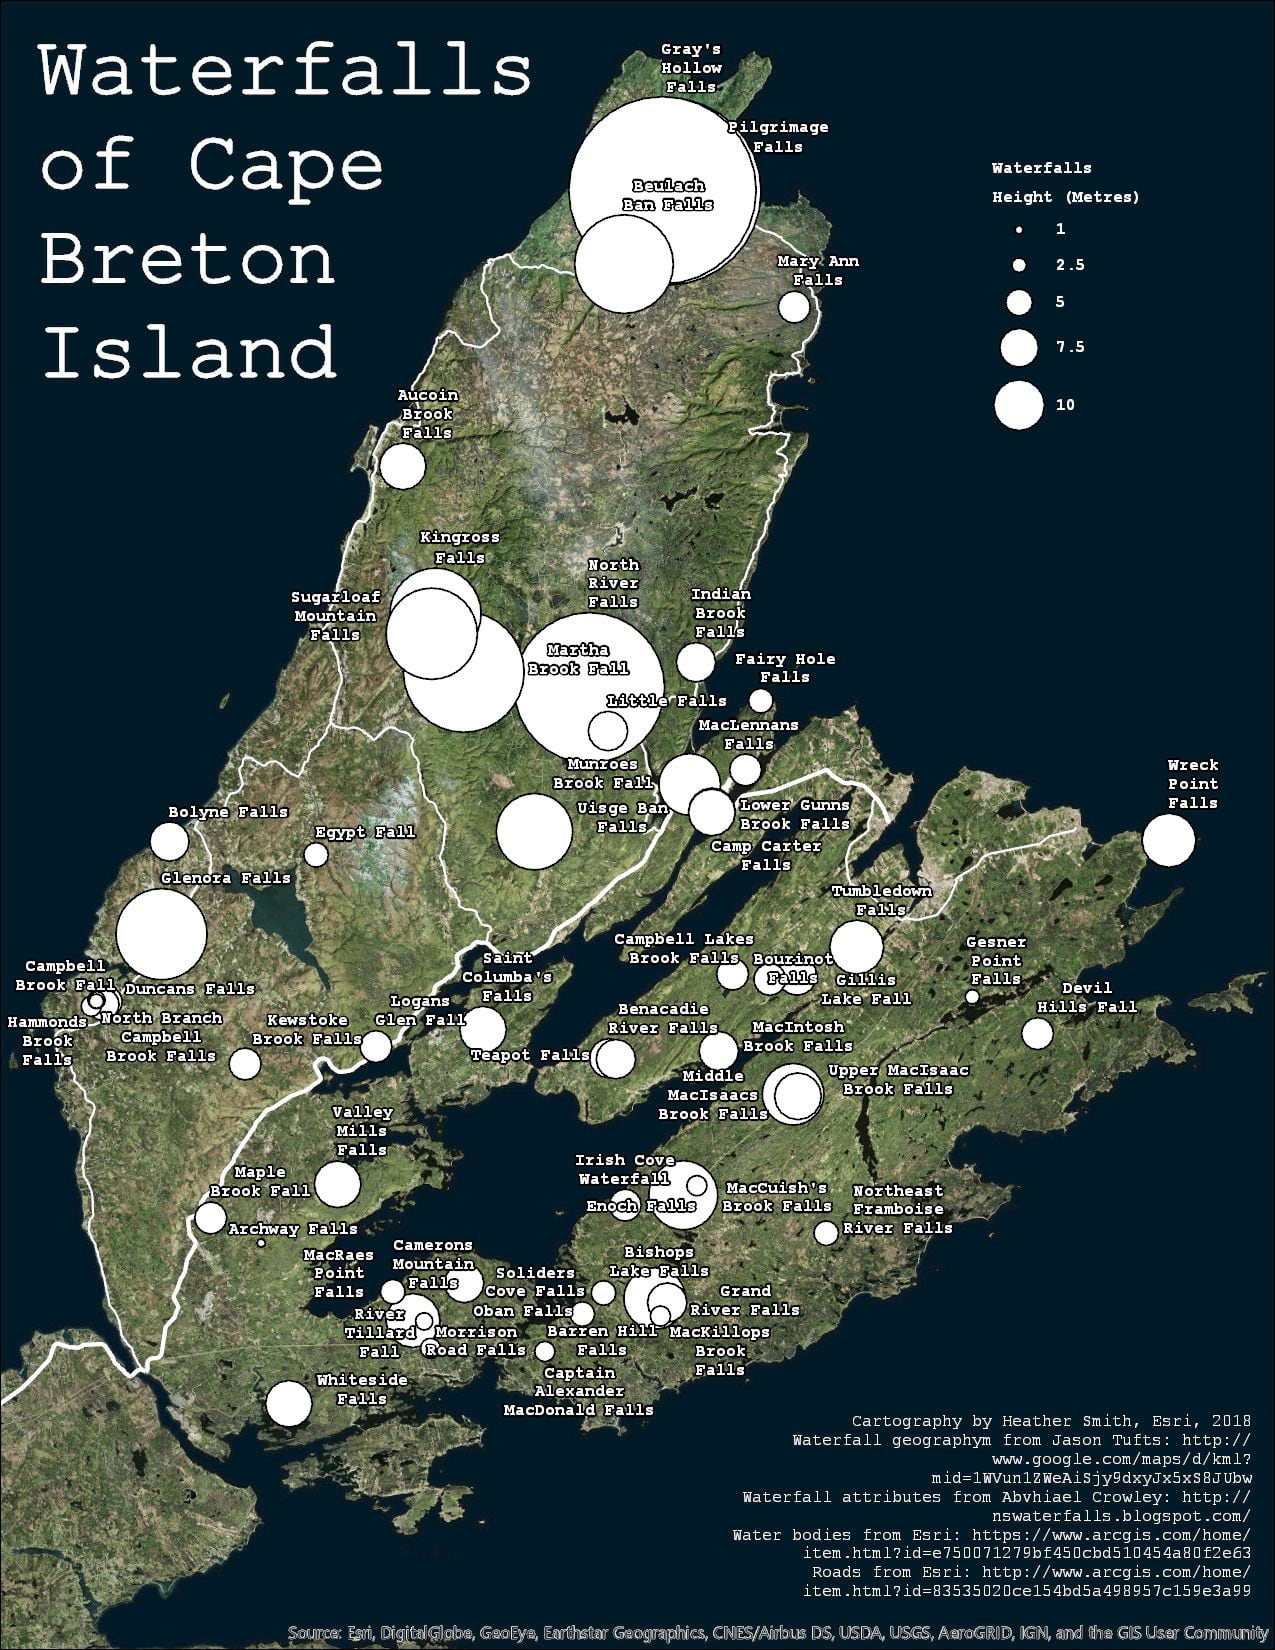 Starting map of Waterfalls of Cape Breton Island